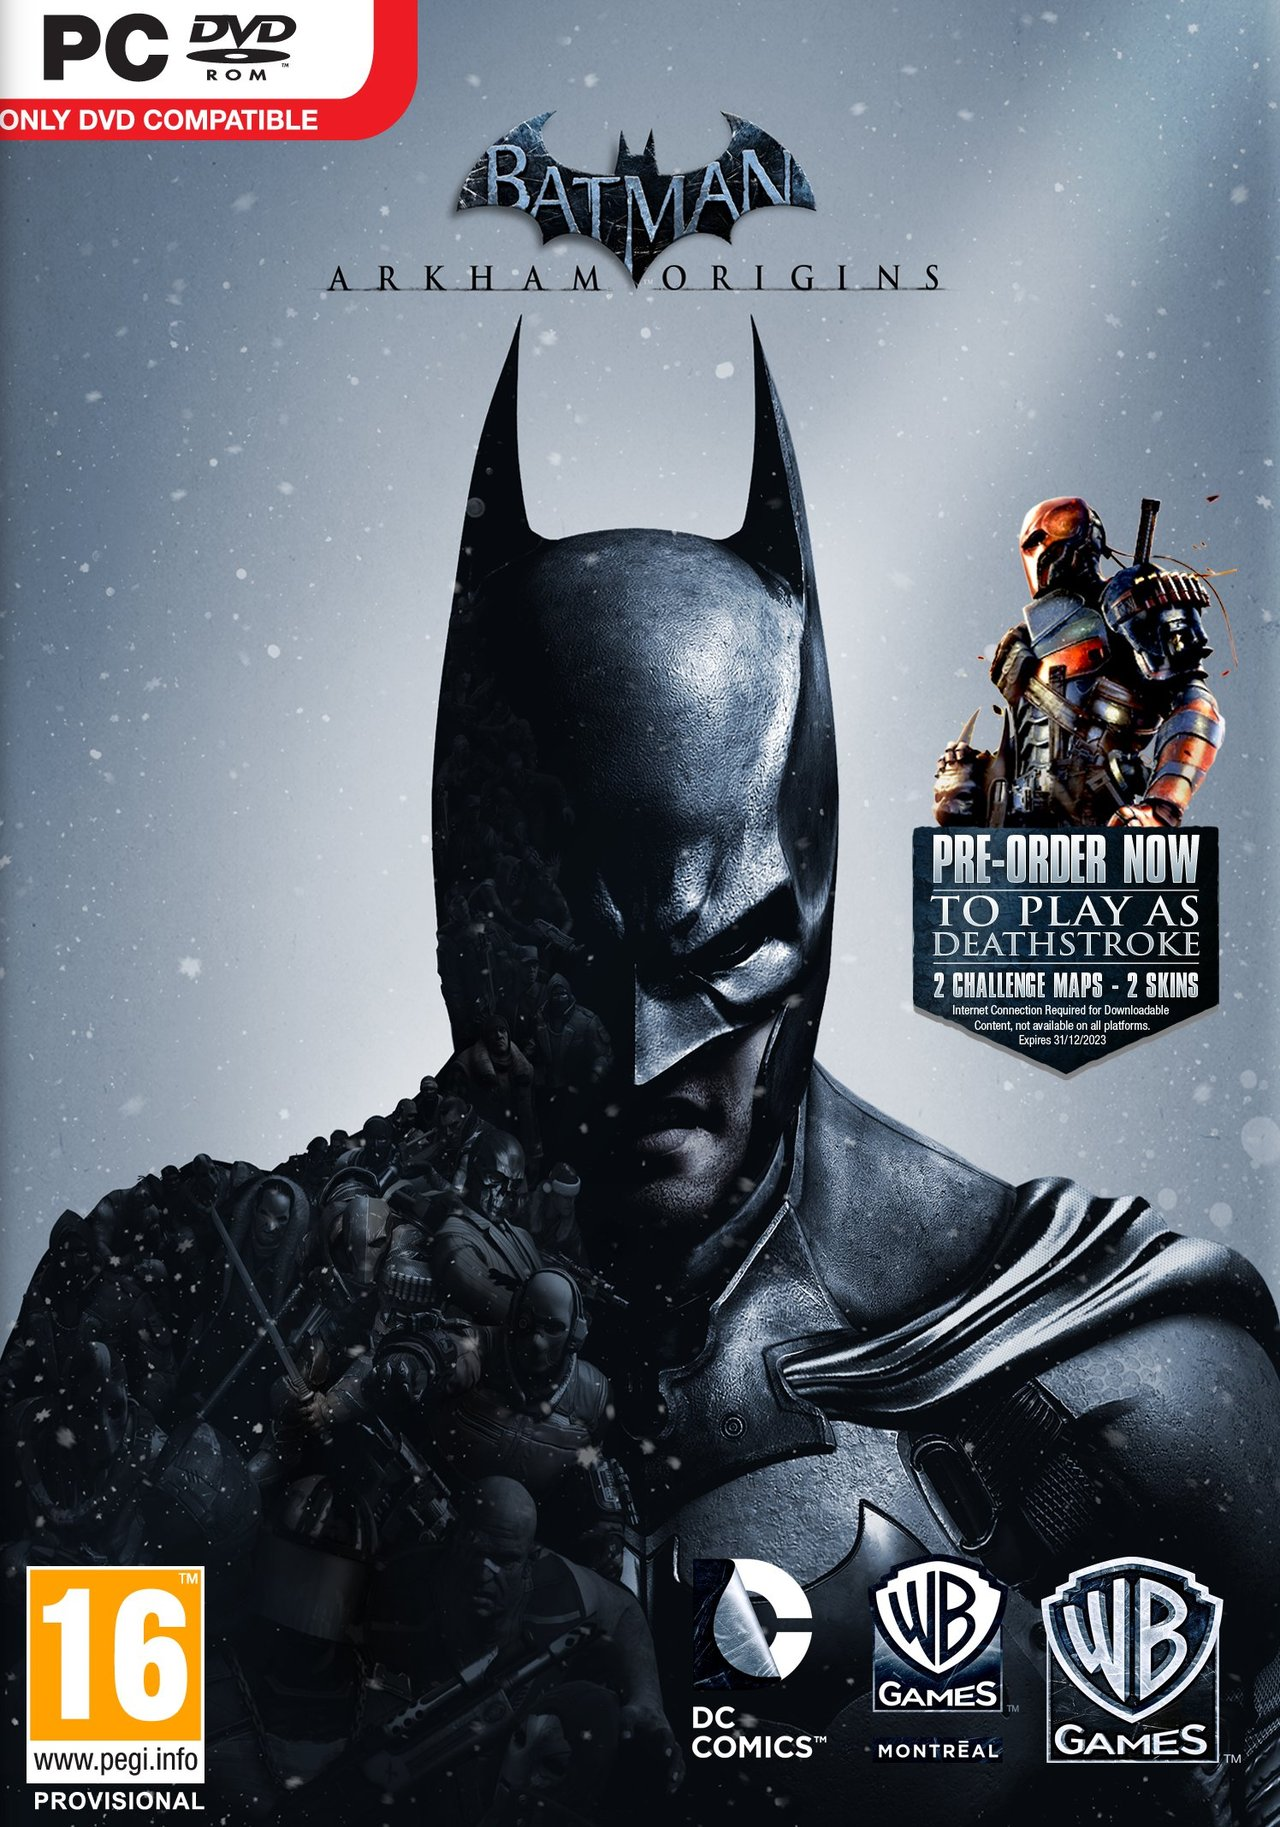 Batman Arkham Origins Update 2